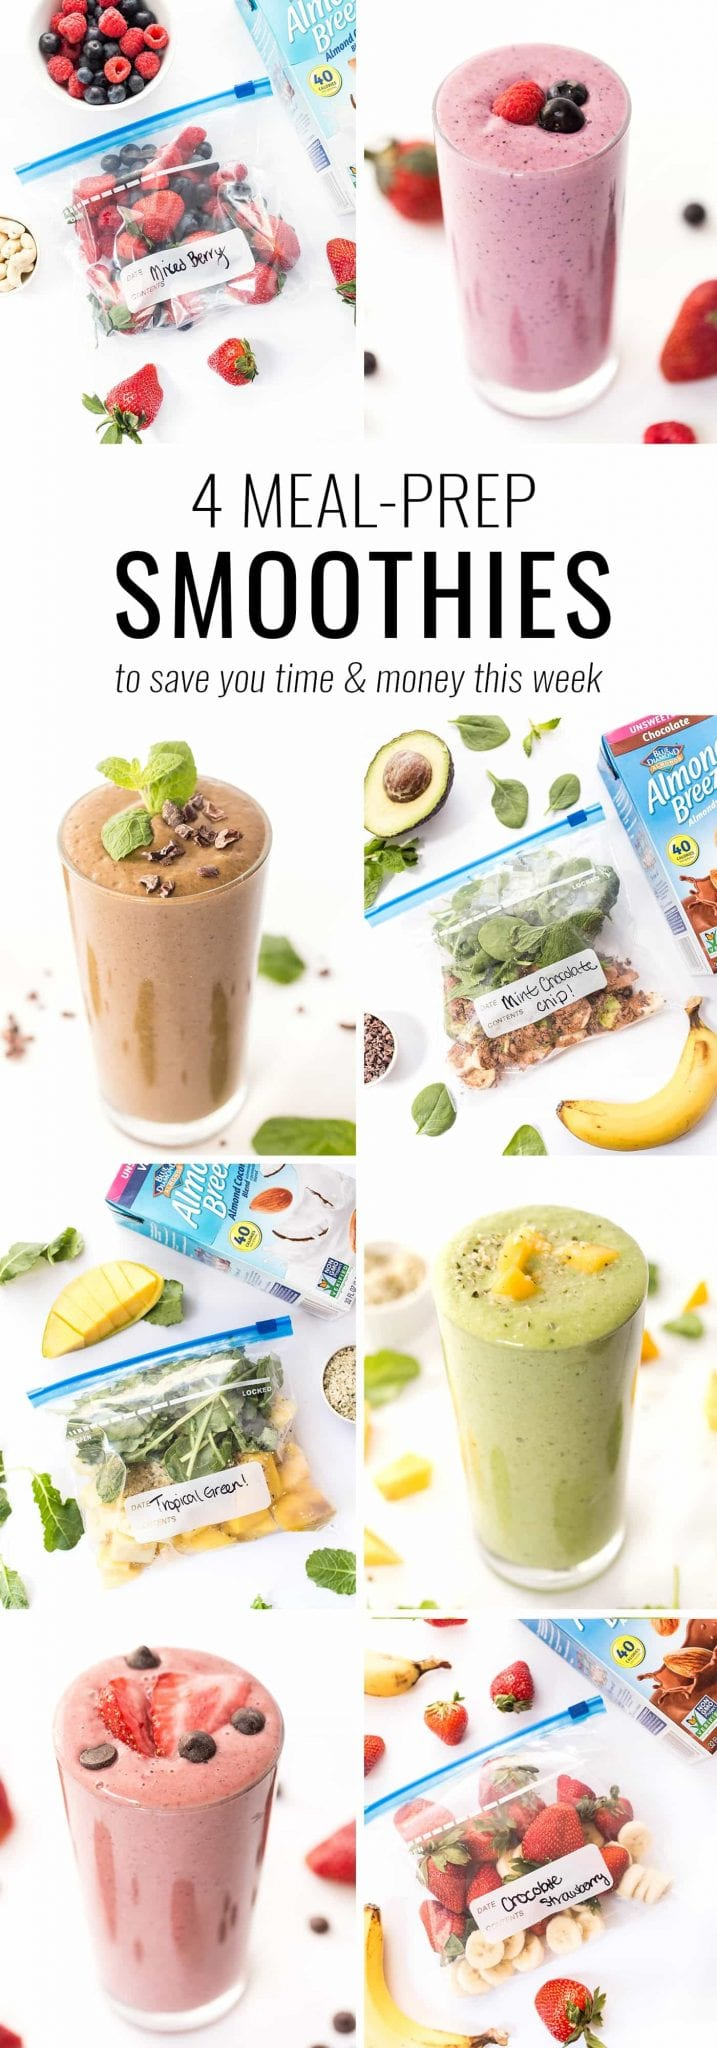 Meal prep like a boss with these 4 EASY meal-prep smoothie recipes! Just toss the ingredients in a bag, freeze and blend when ready to eat!